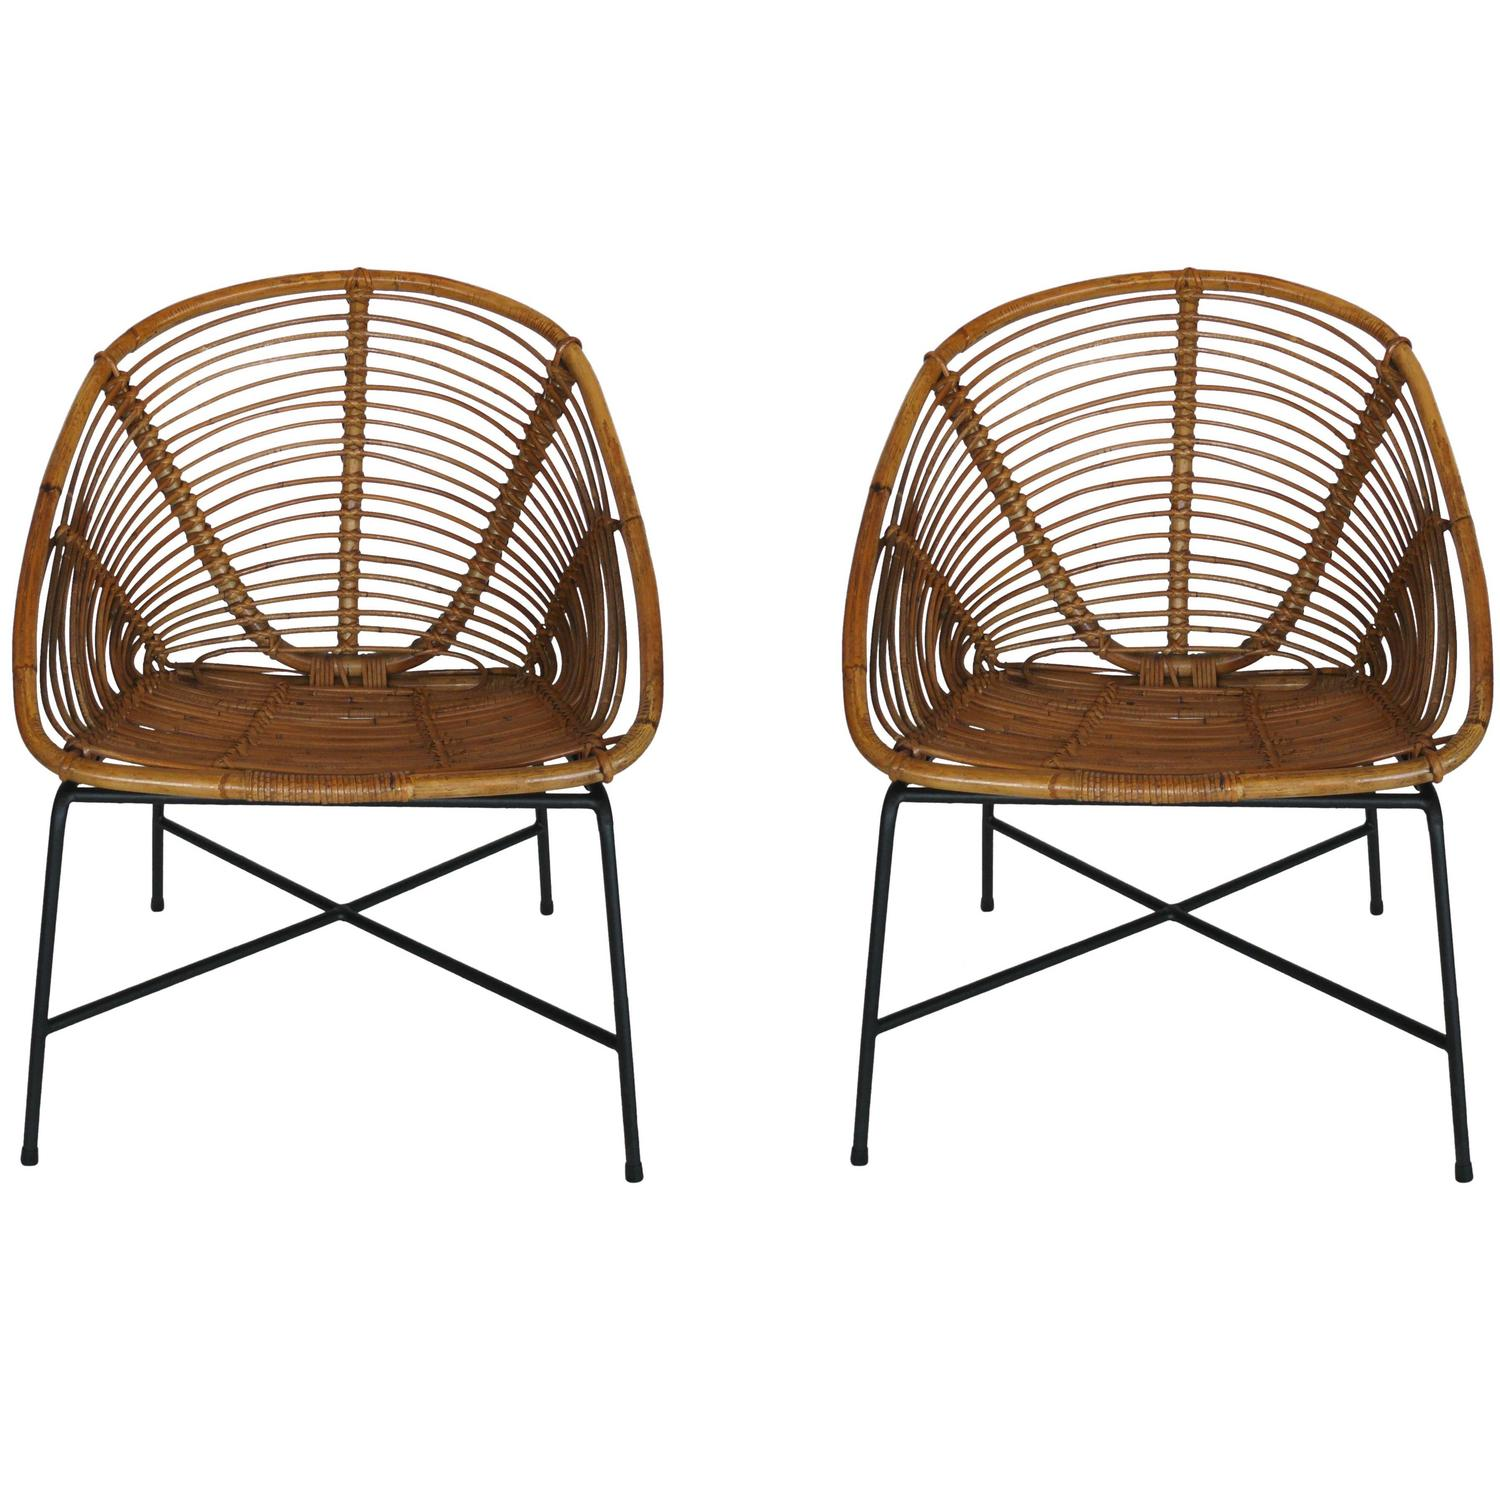 French Rattan Chairs At 1stdibs